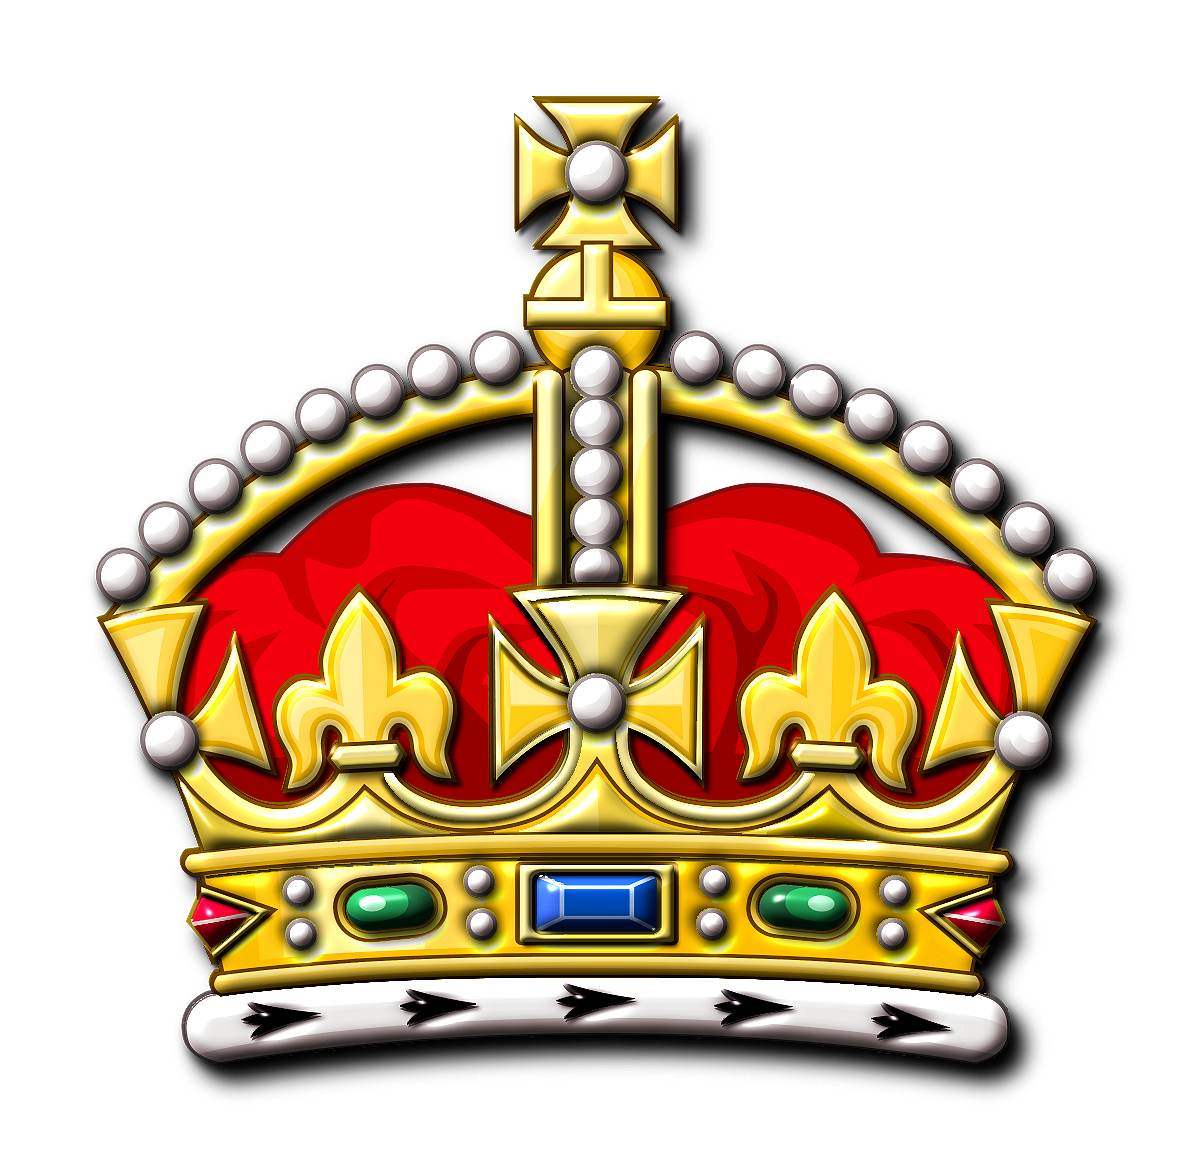 Crown clipart queen svg freeuse library Crown Royal Clipart British Crown#3203039 svg freeuse library